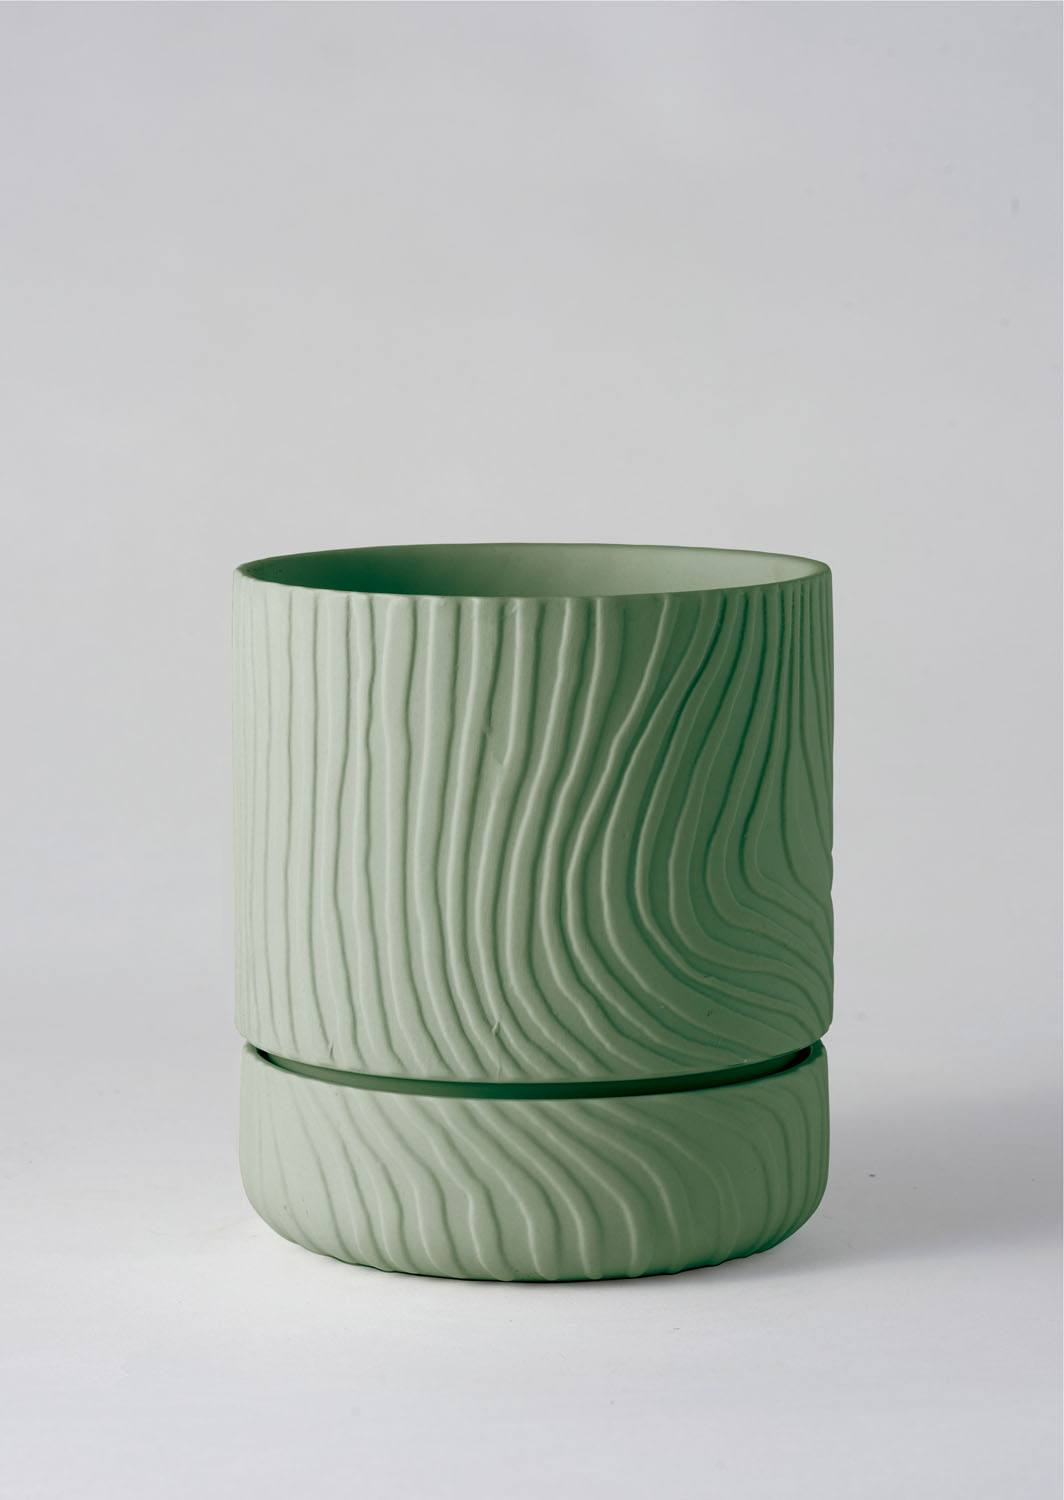 Angus & Celeste Abstract Relief Plant Pot - Brush Line Thin Olive Green